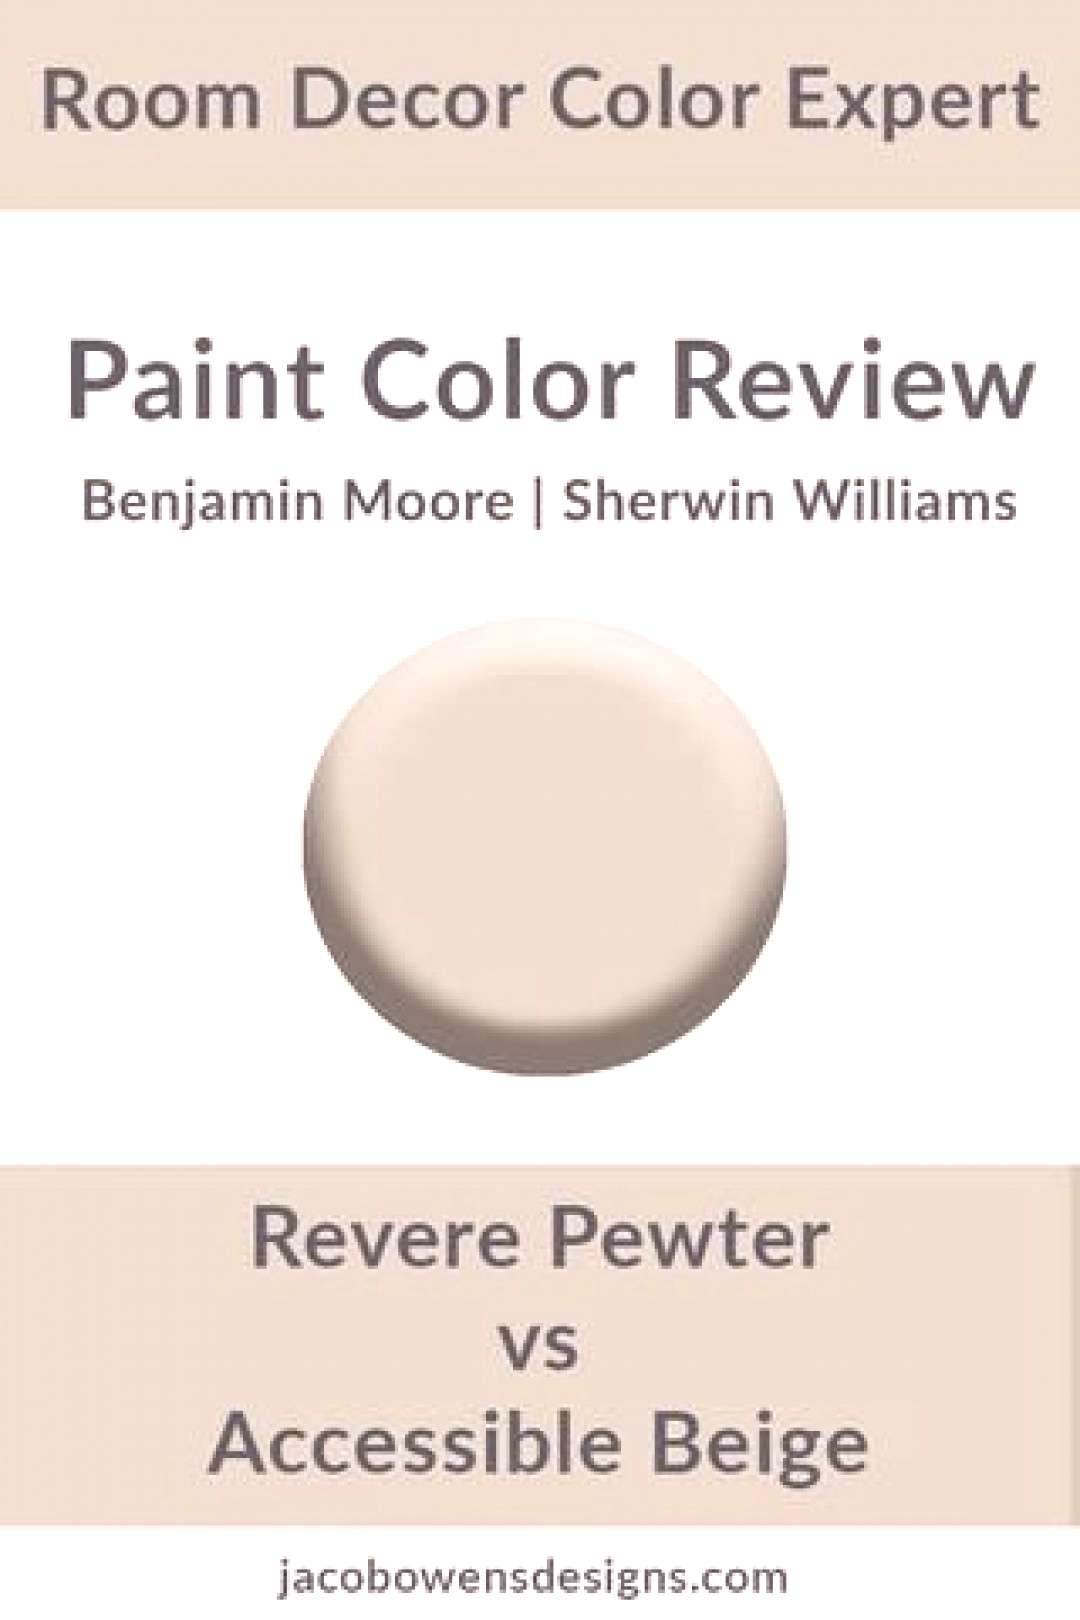 Benjamin Moore Revere Pewter vs Sherwin Williams Accessible Beige Color Review by Jacob Owens